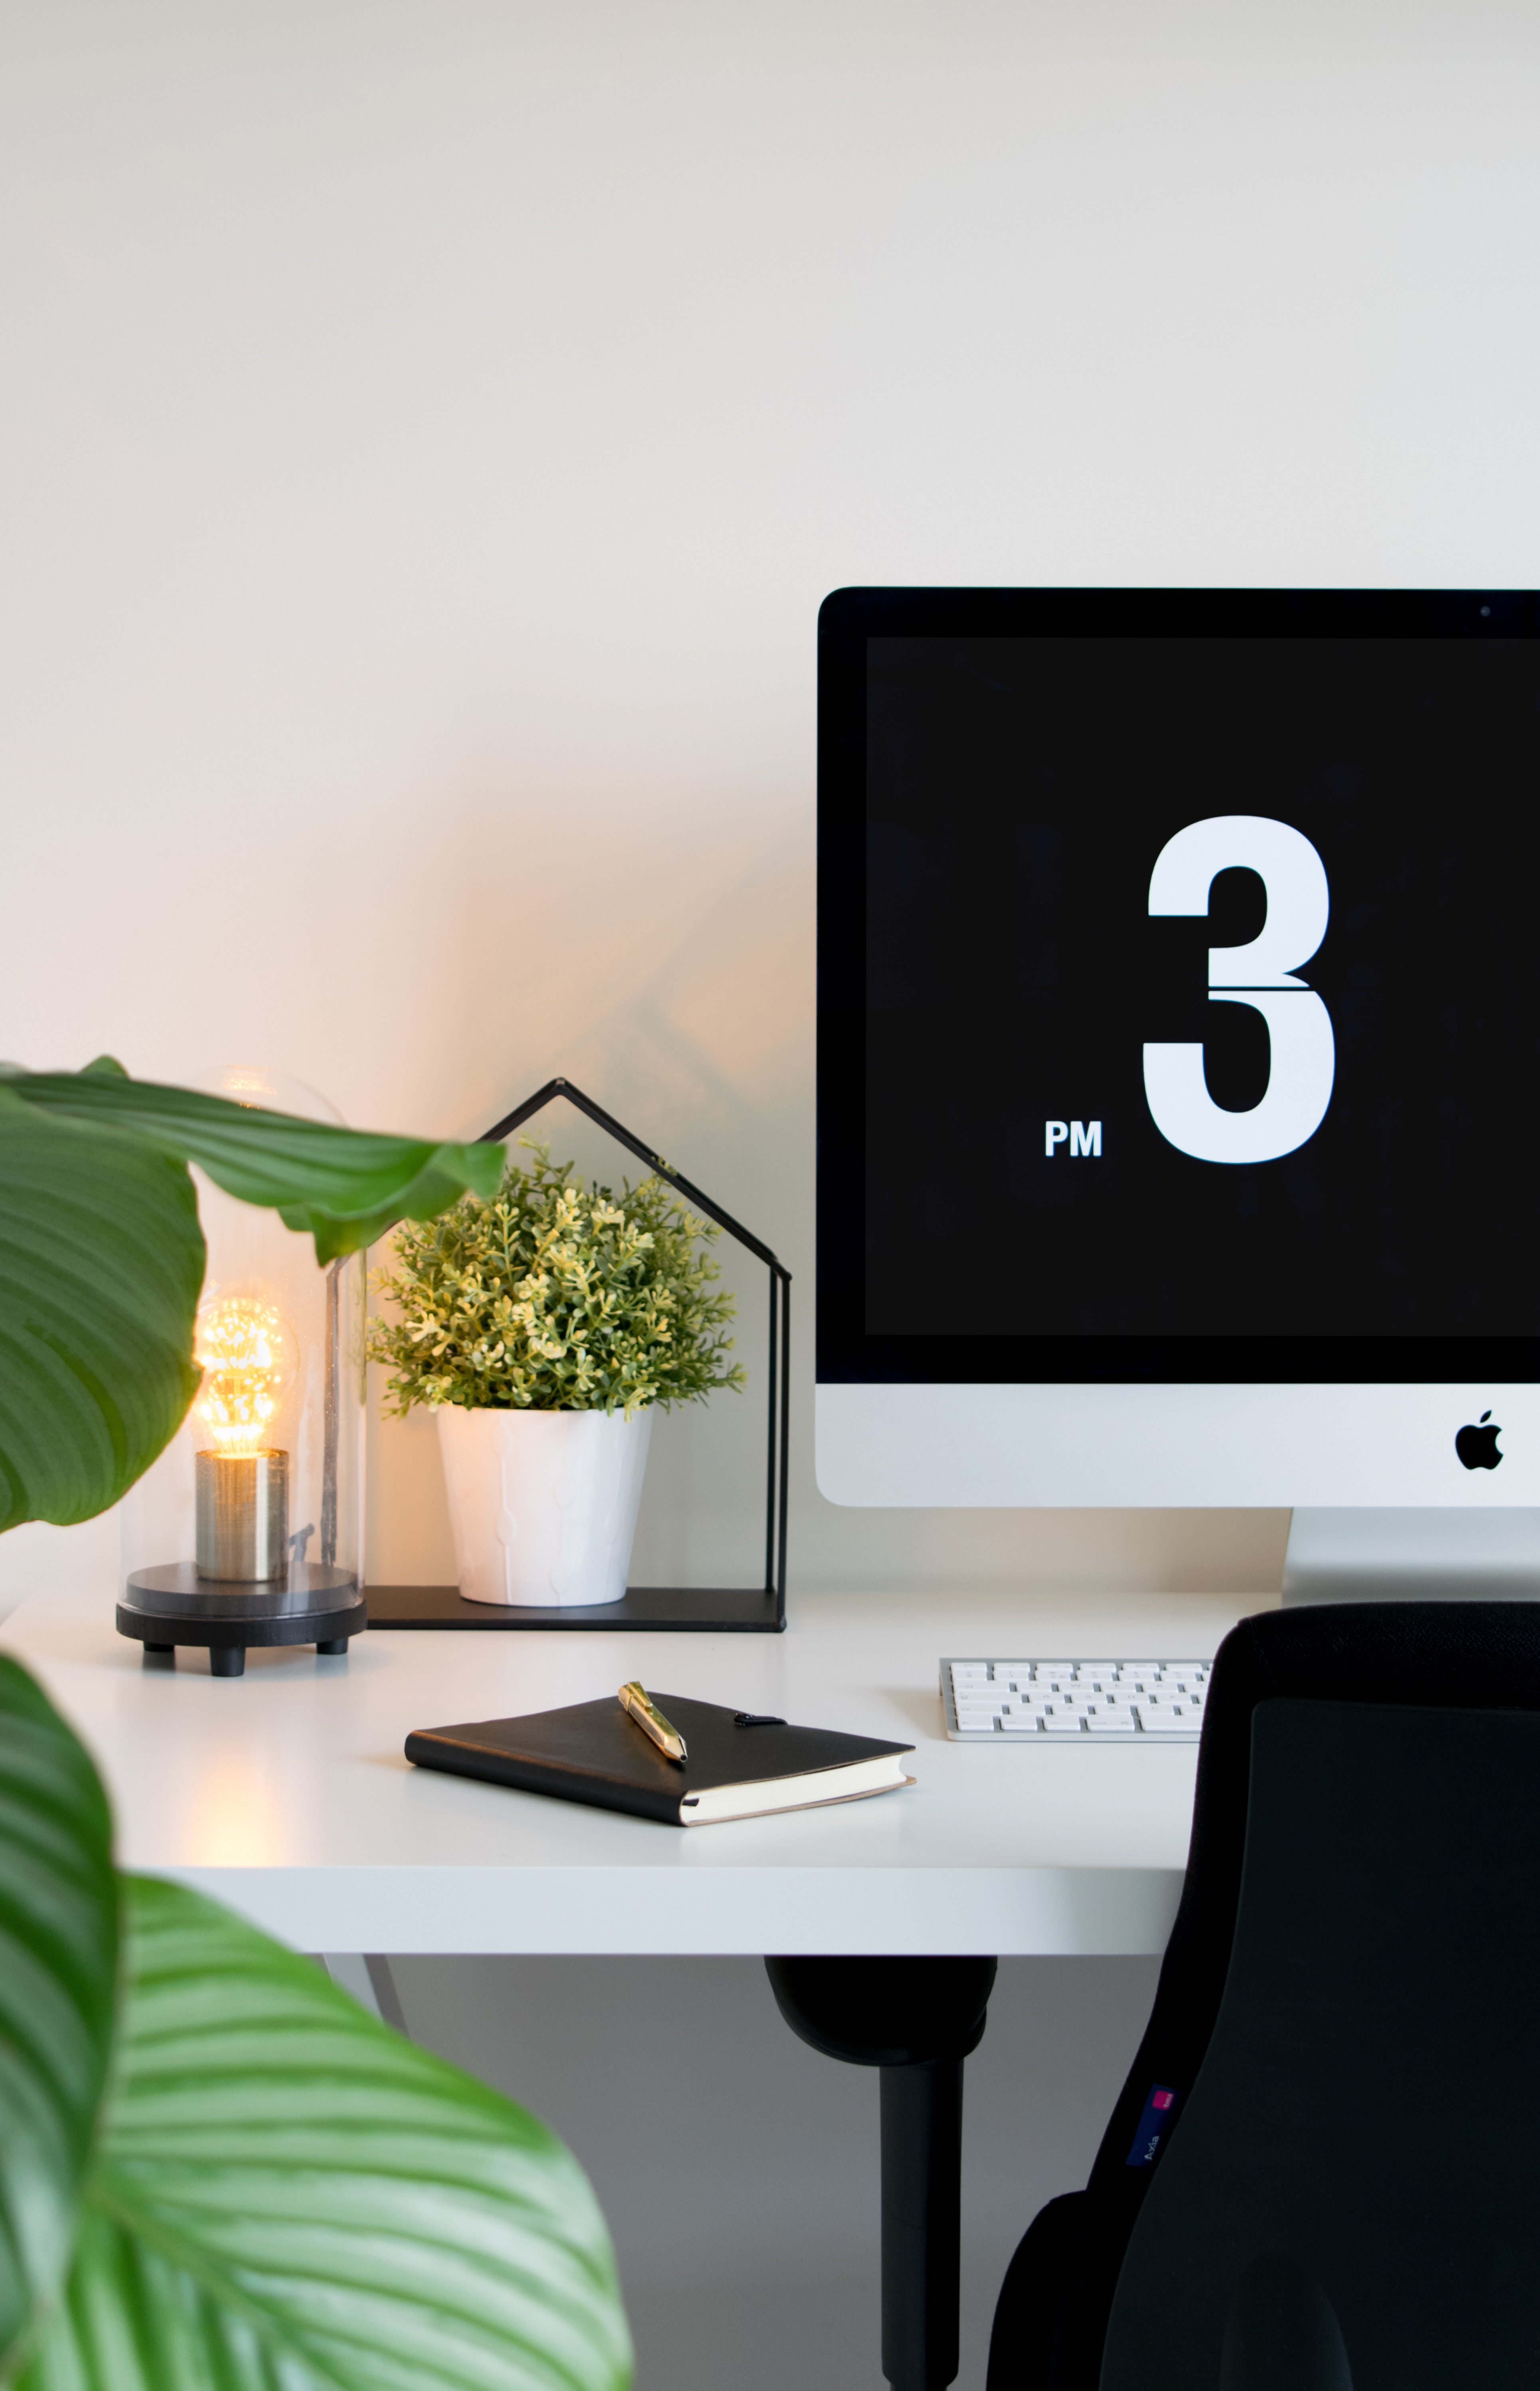 Clean table, plant and good lighting are components of a good Feng Shui office.